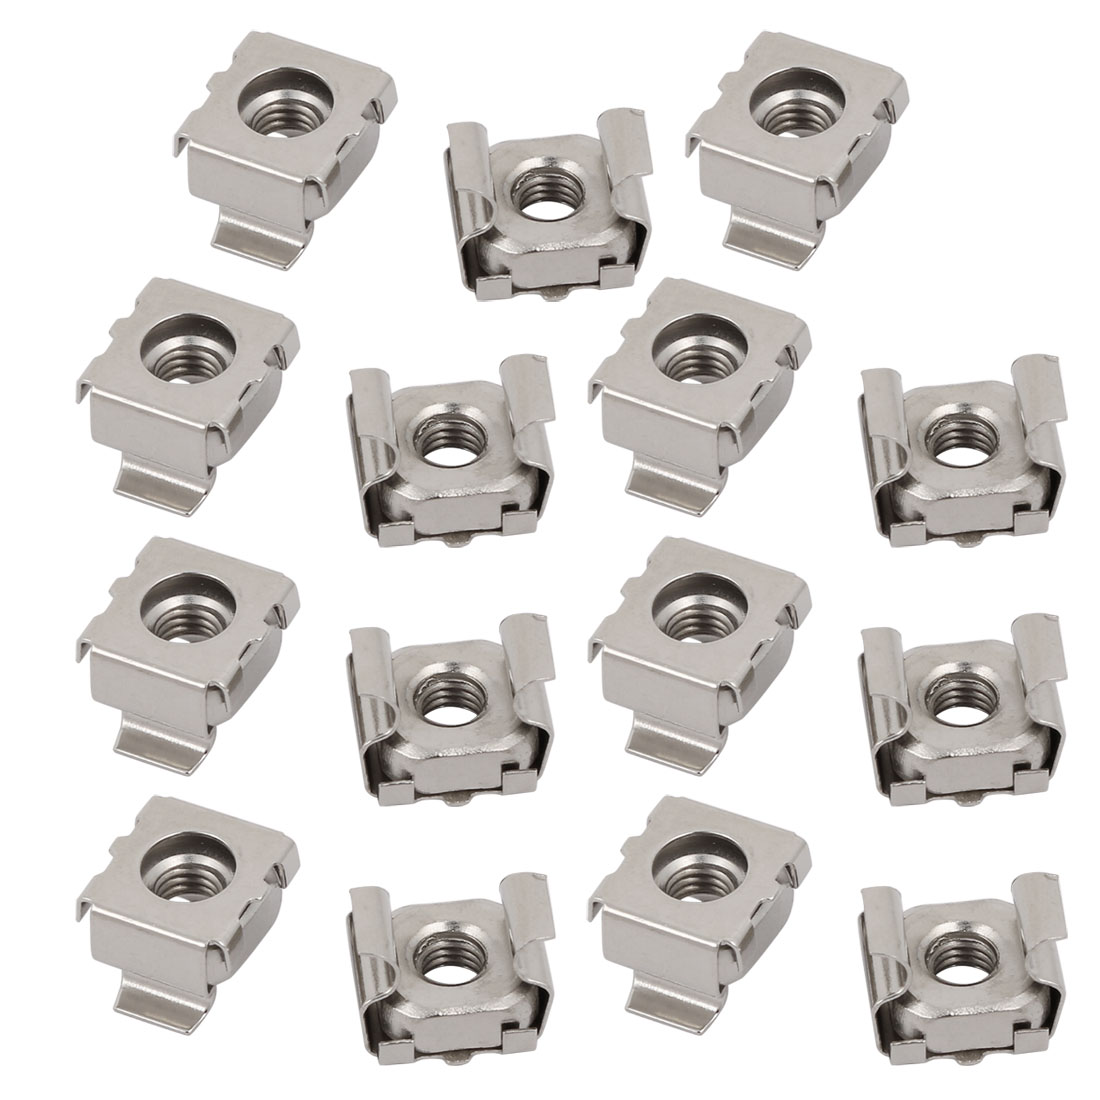 15pcs M5 65Mn Steel Nickle Plated Cage Nut Silver Tone for Server Shelf Cabinet